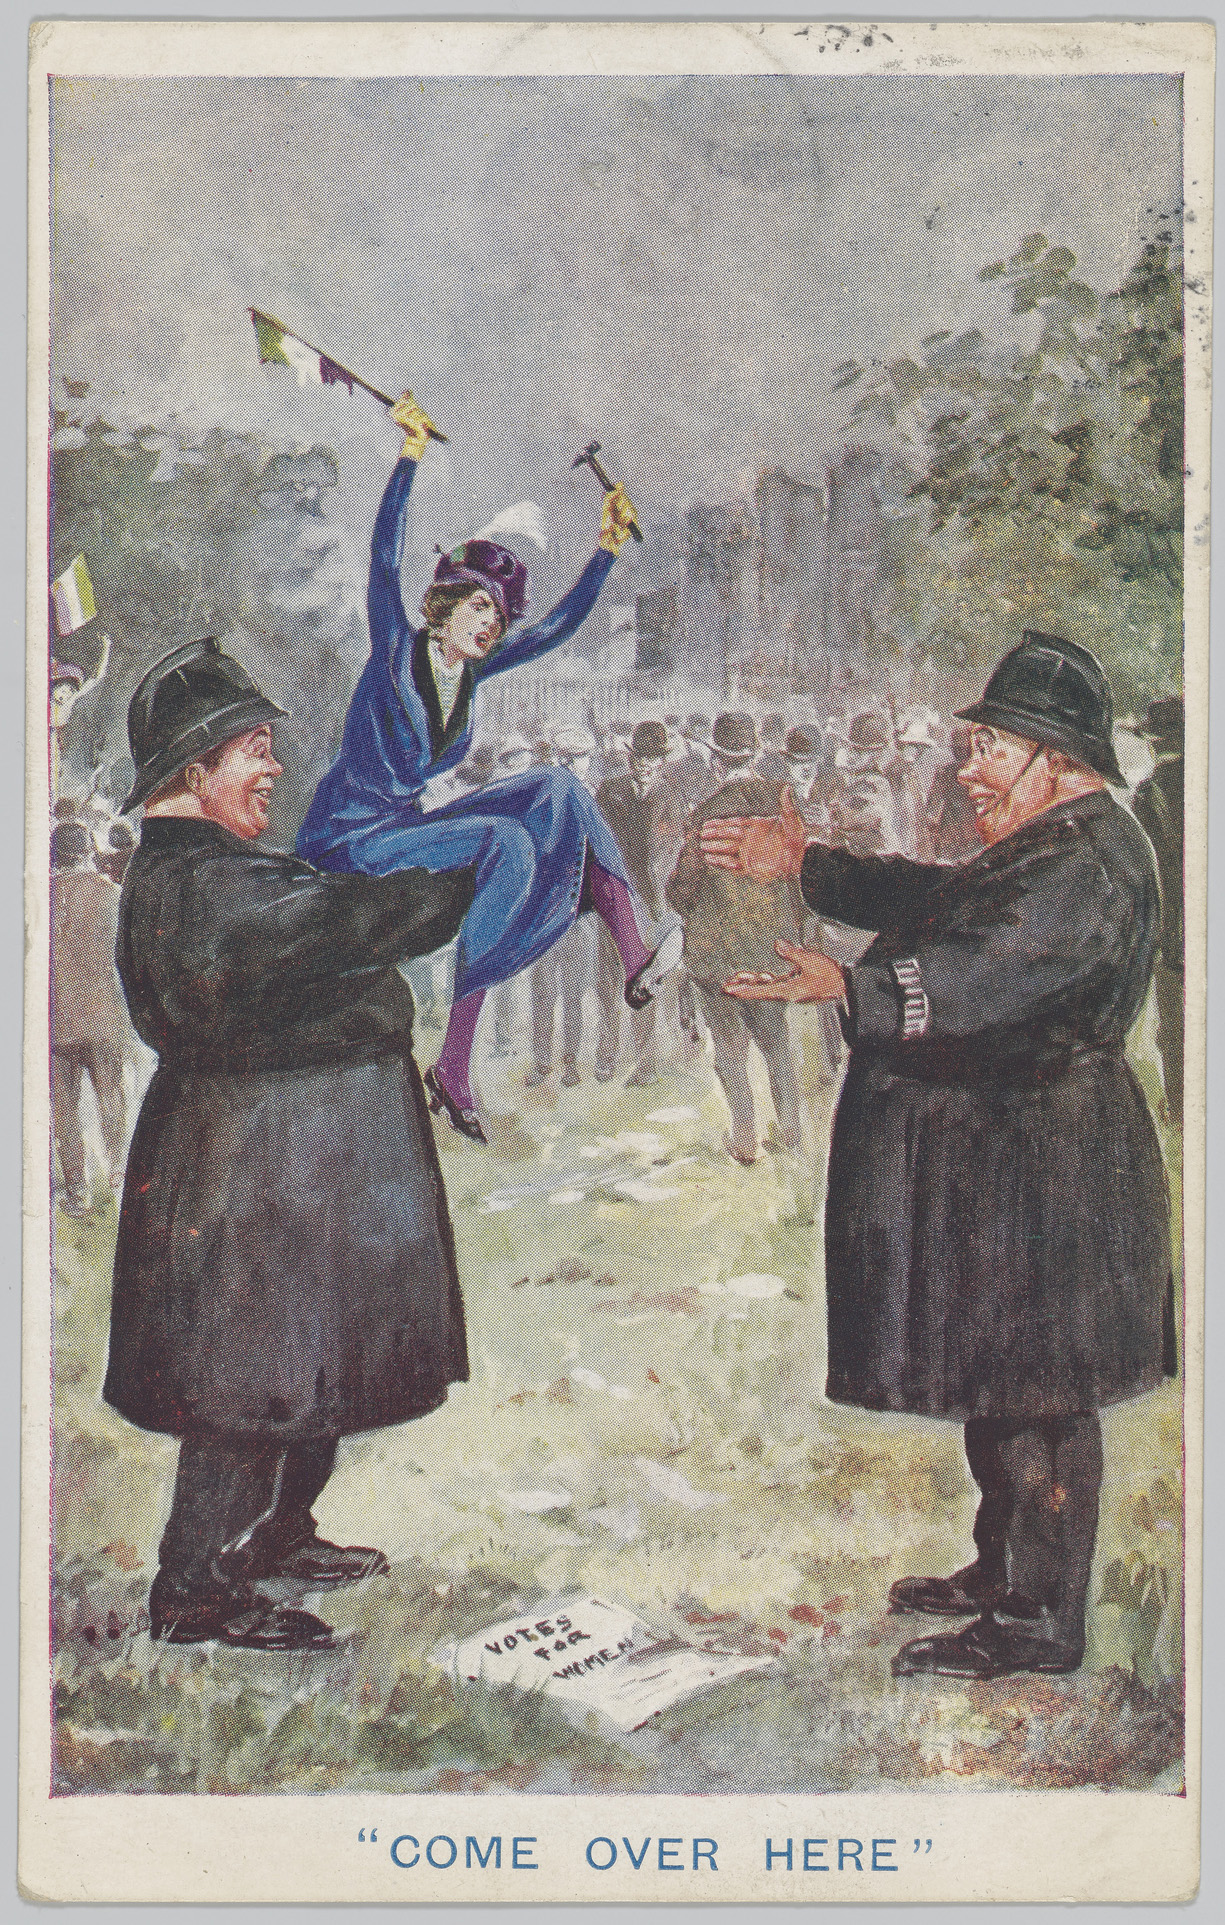 Image of a small suffragette in a blue dress being lifted in the air by a large police officer.